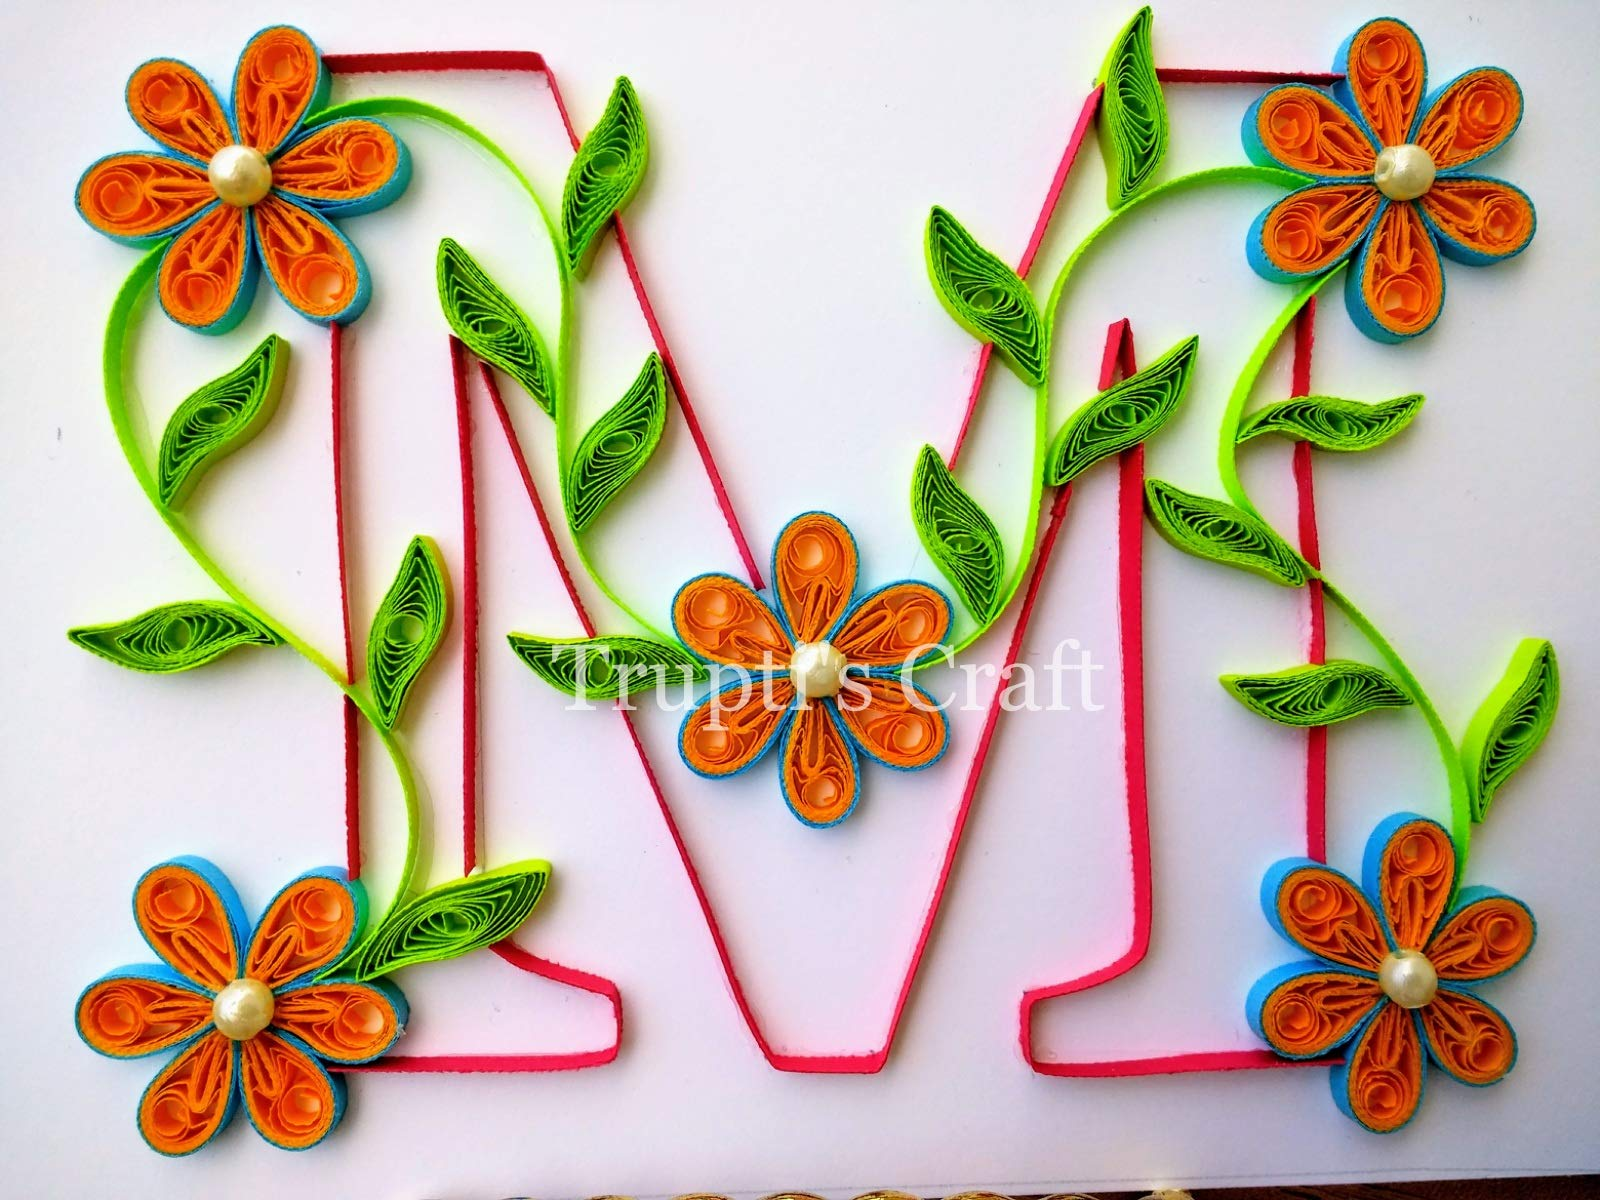 Paper Quilling Monogram 'M' Wall Frame/Wall Hanging/Home Decor/Gift / Children Room Decor/Monogram / Paper Quilling Gift